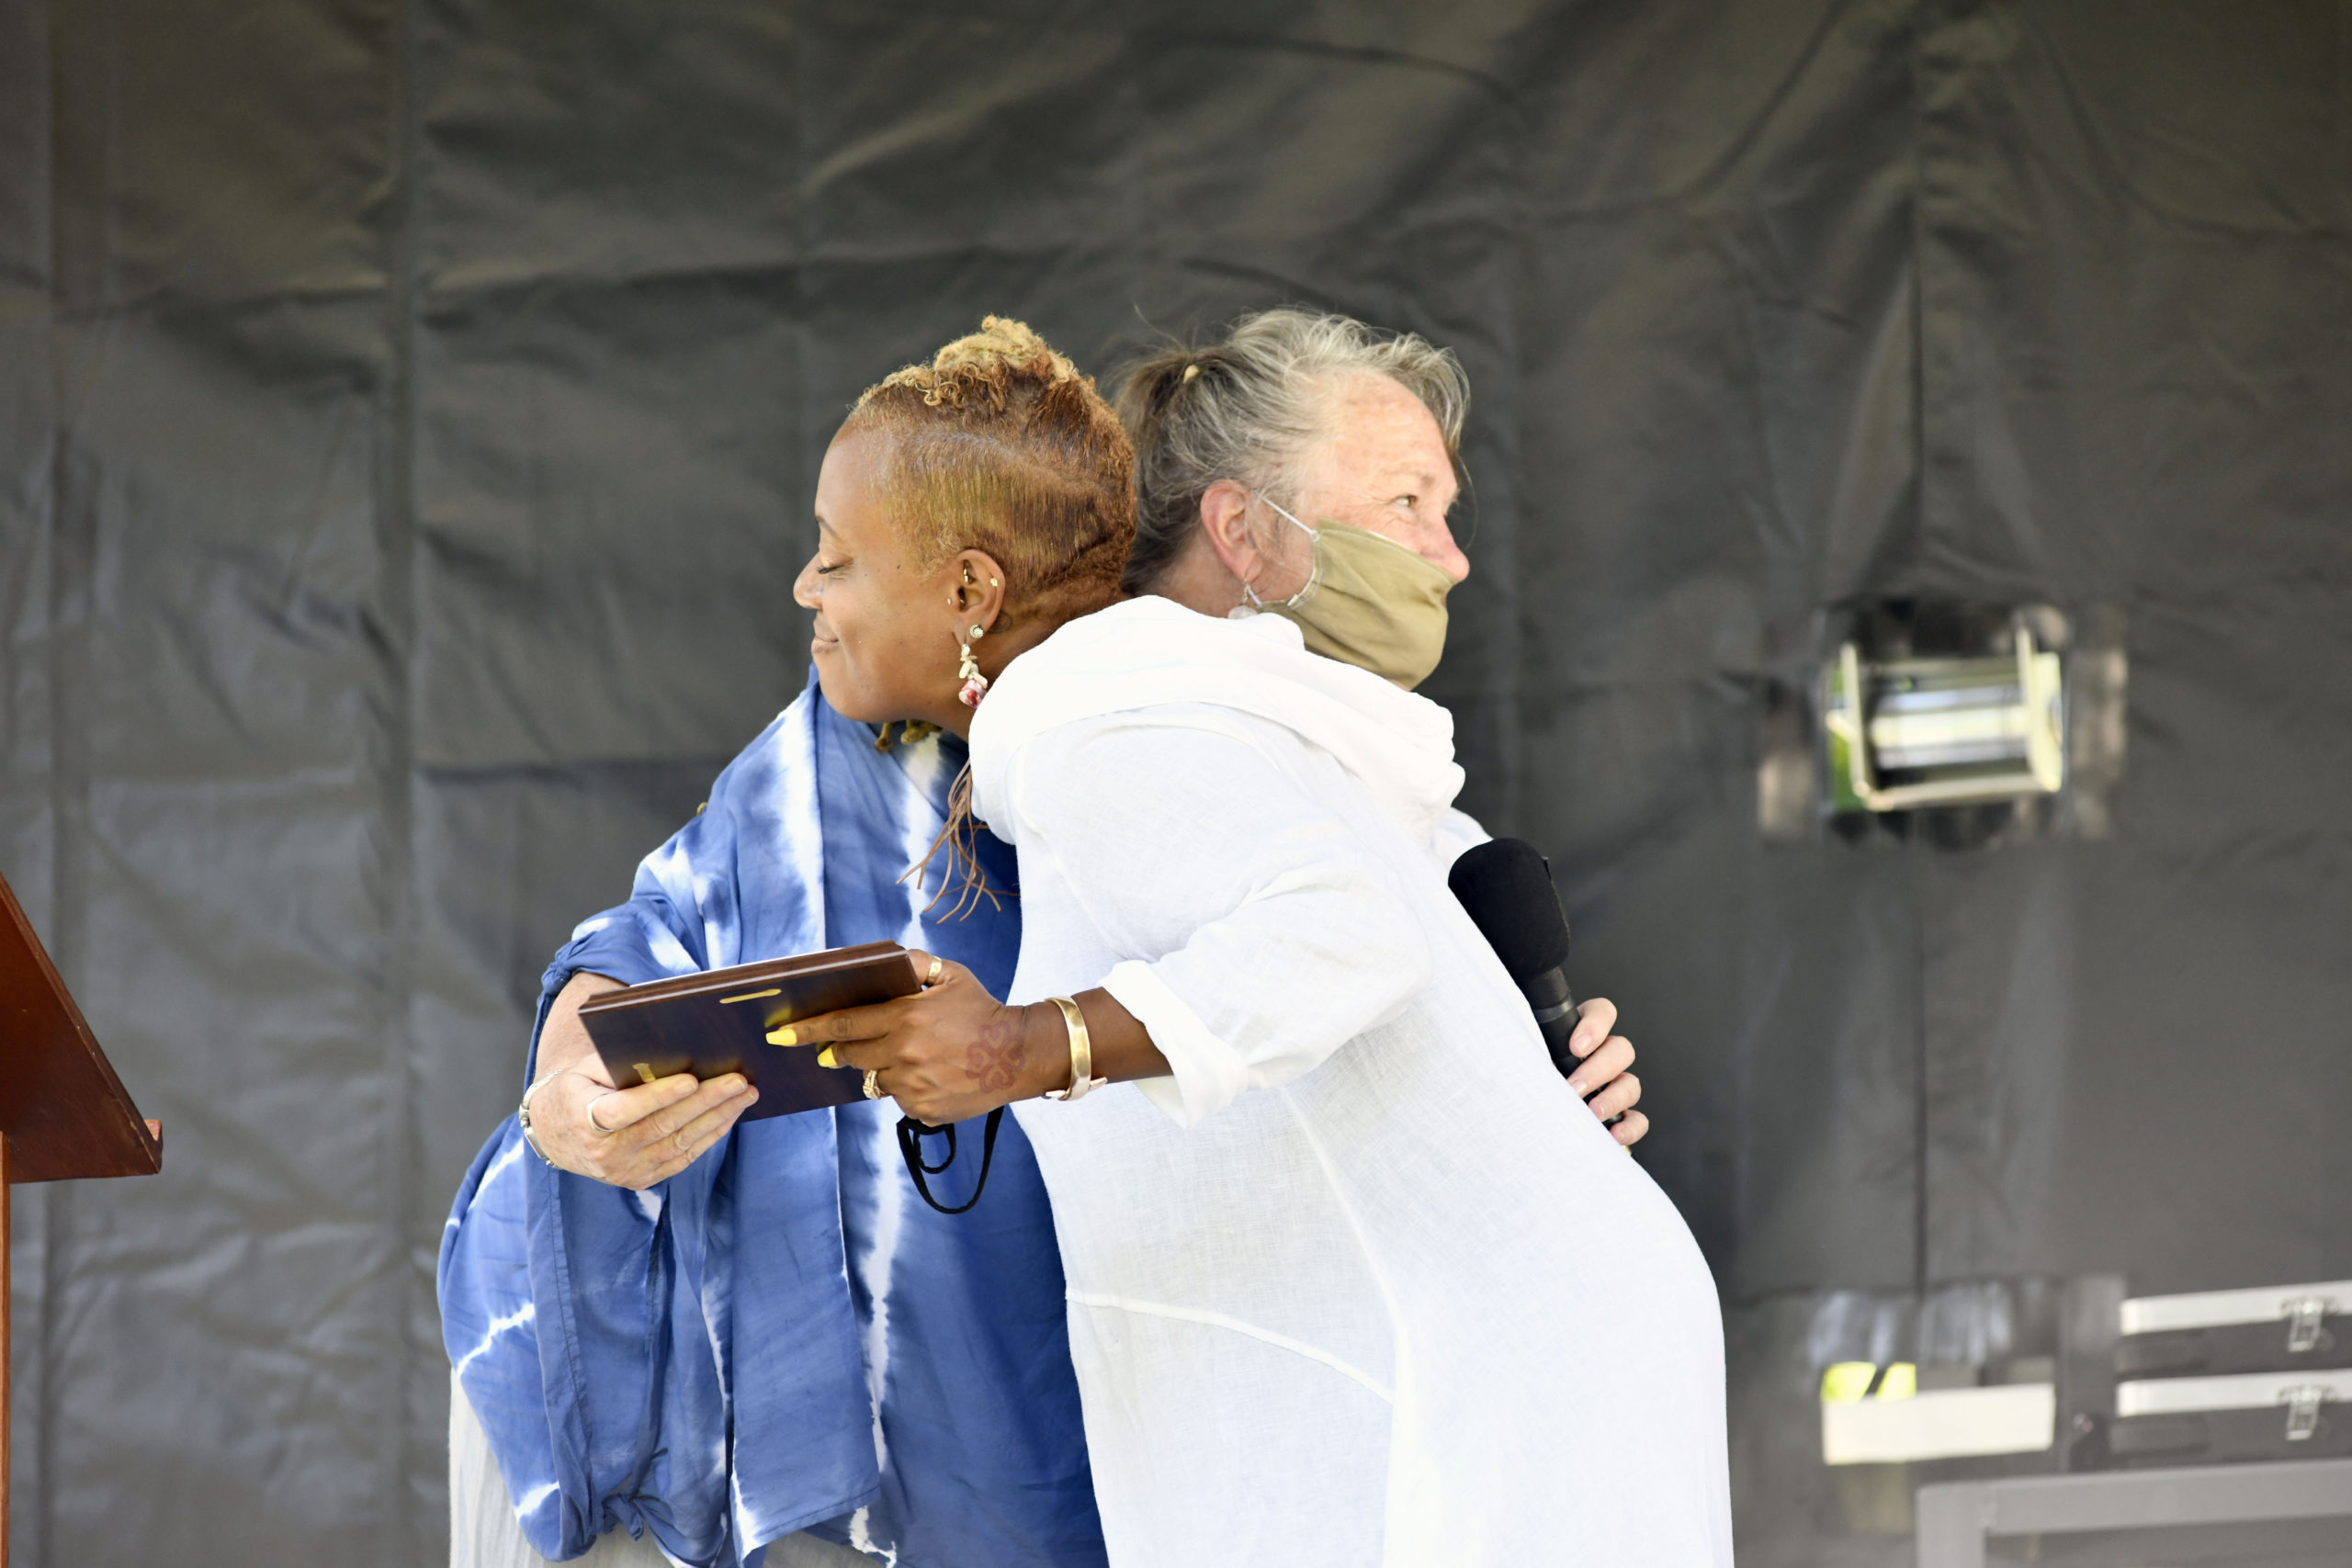 Parishioners and friends and well-wishers came to the grounds of the Southampton Arts Center to bid farewell to Reverend Leslie Duroseau of the Hamptons United Methodist Church in Southampton Village on Sunday. Carol Gilbert Lynch presents Rev. Duroseau with a plaque. DANA SHAW